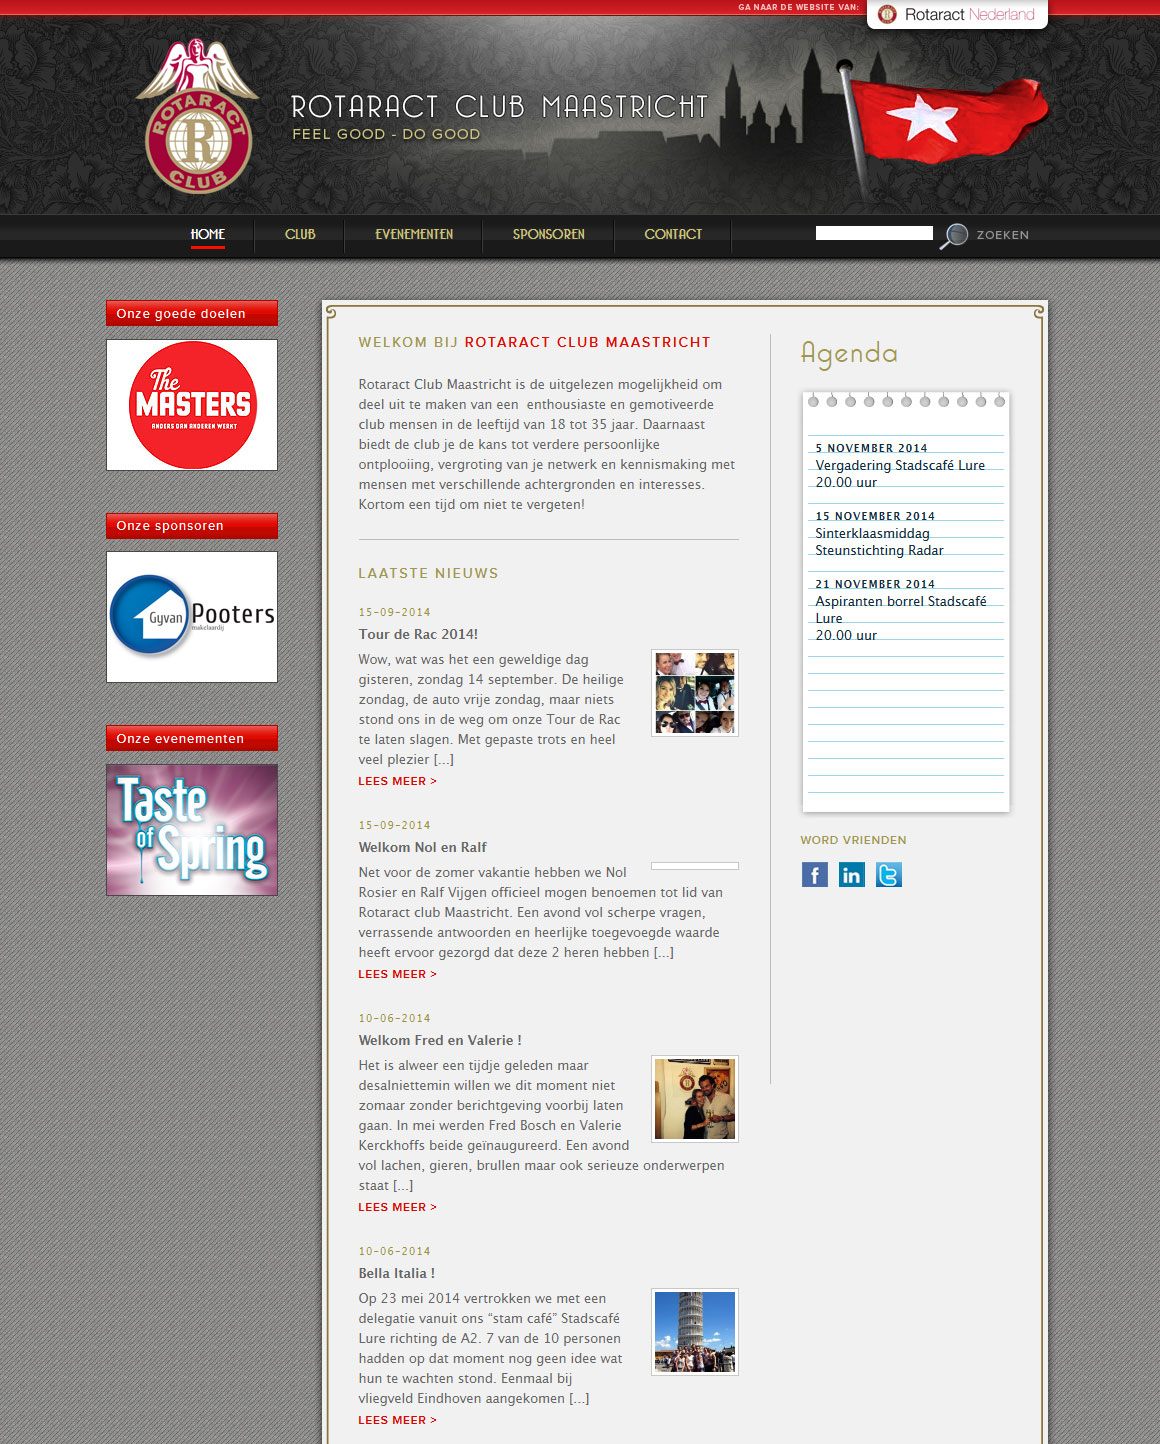 rotaract-maastricht_website1